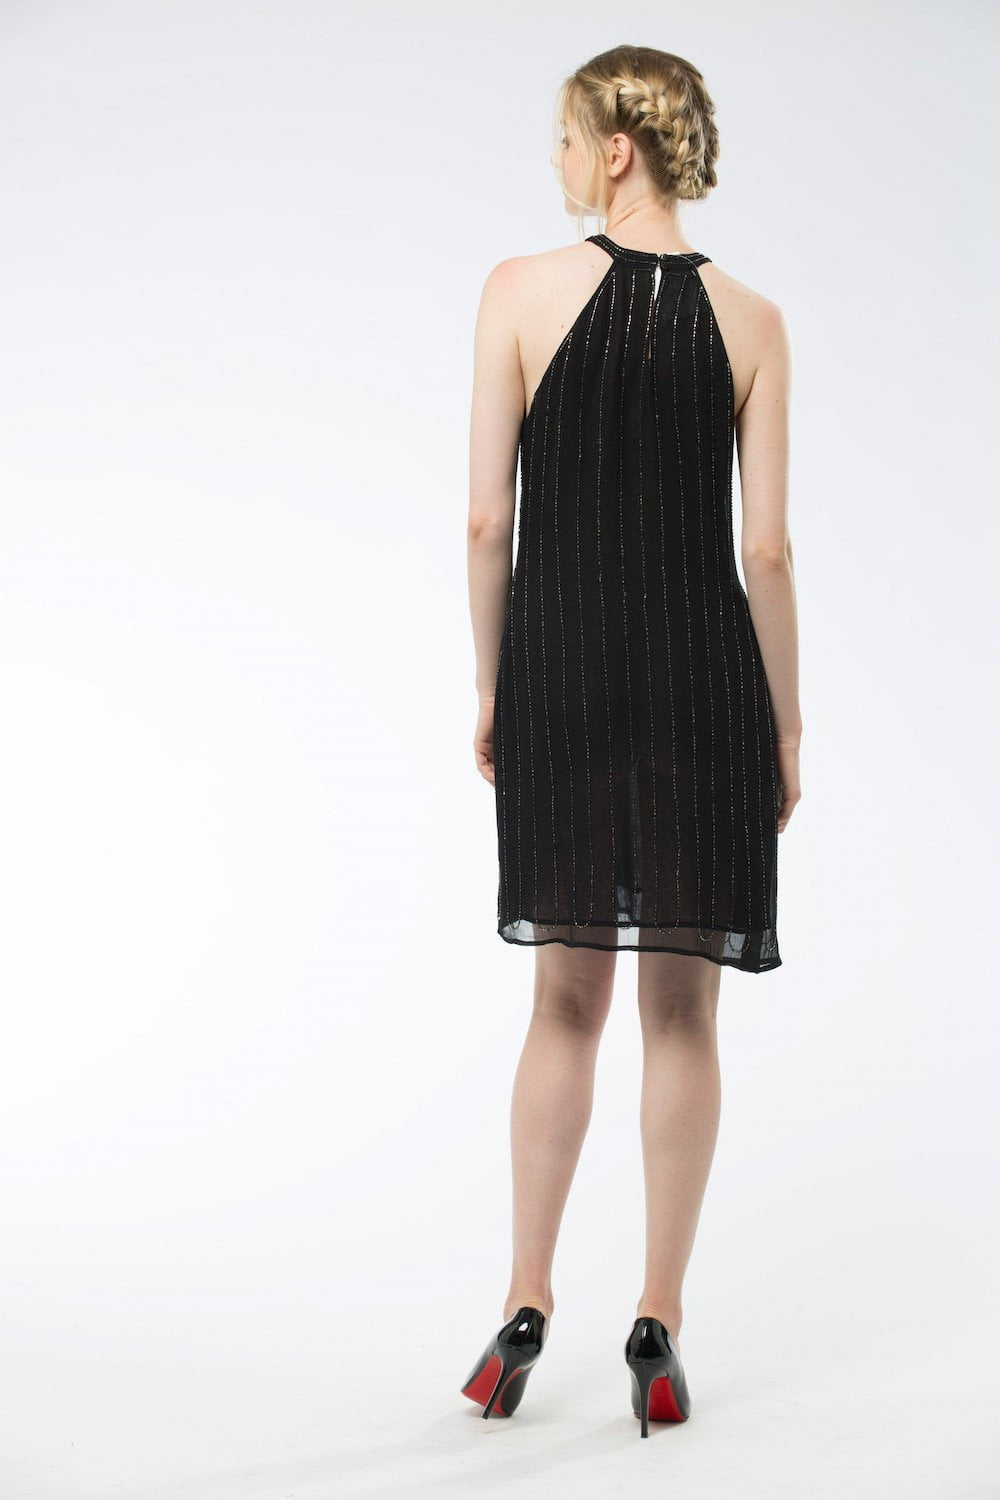 AMIRA- Dress Black with sequins